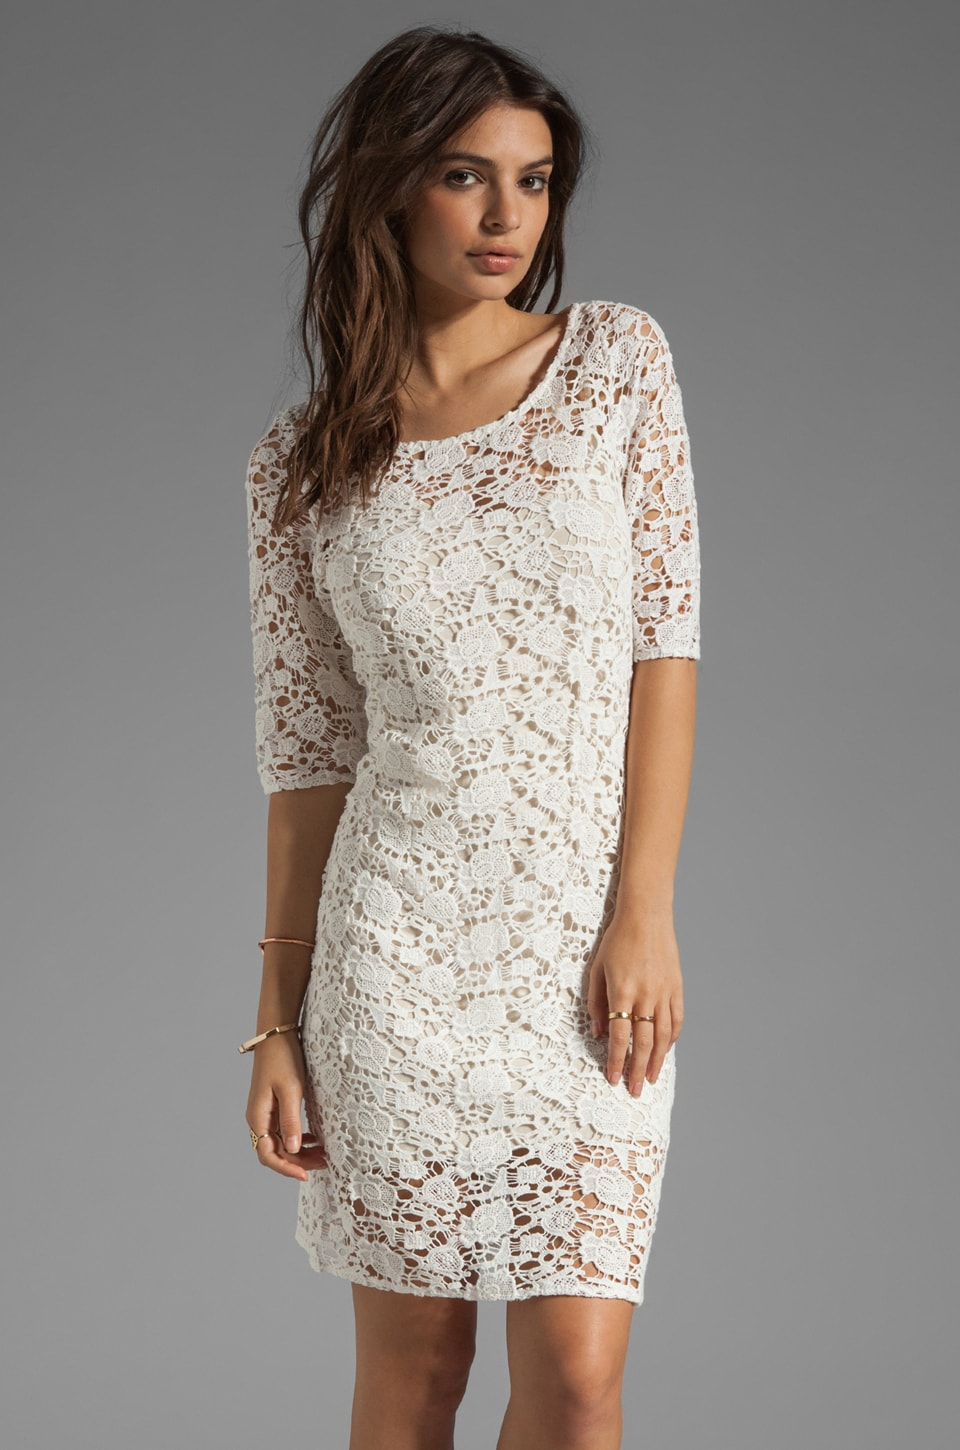 Velvet by Graham & Spencer x Lily Aldridge Lily Crochet Lace Dress in Cream